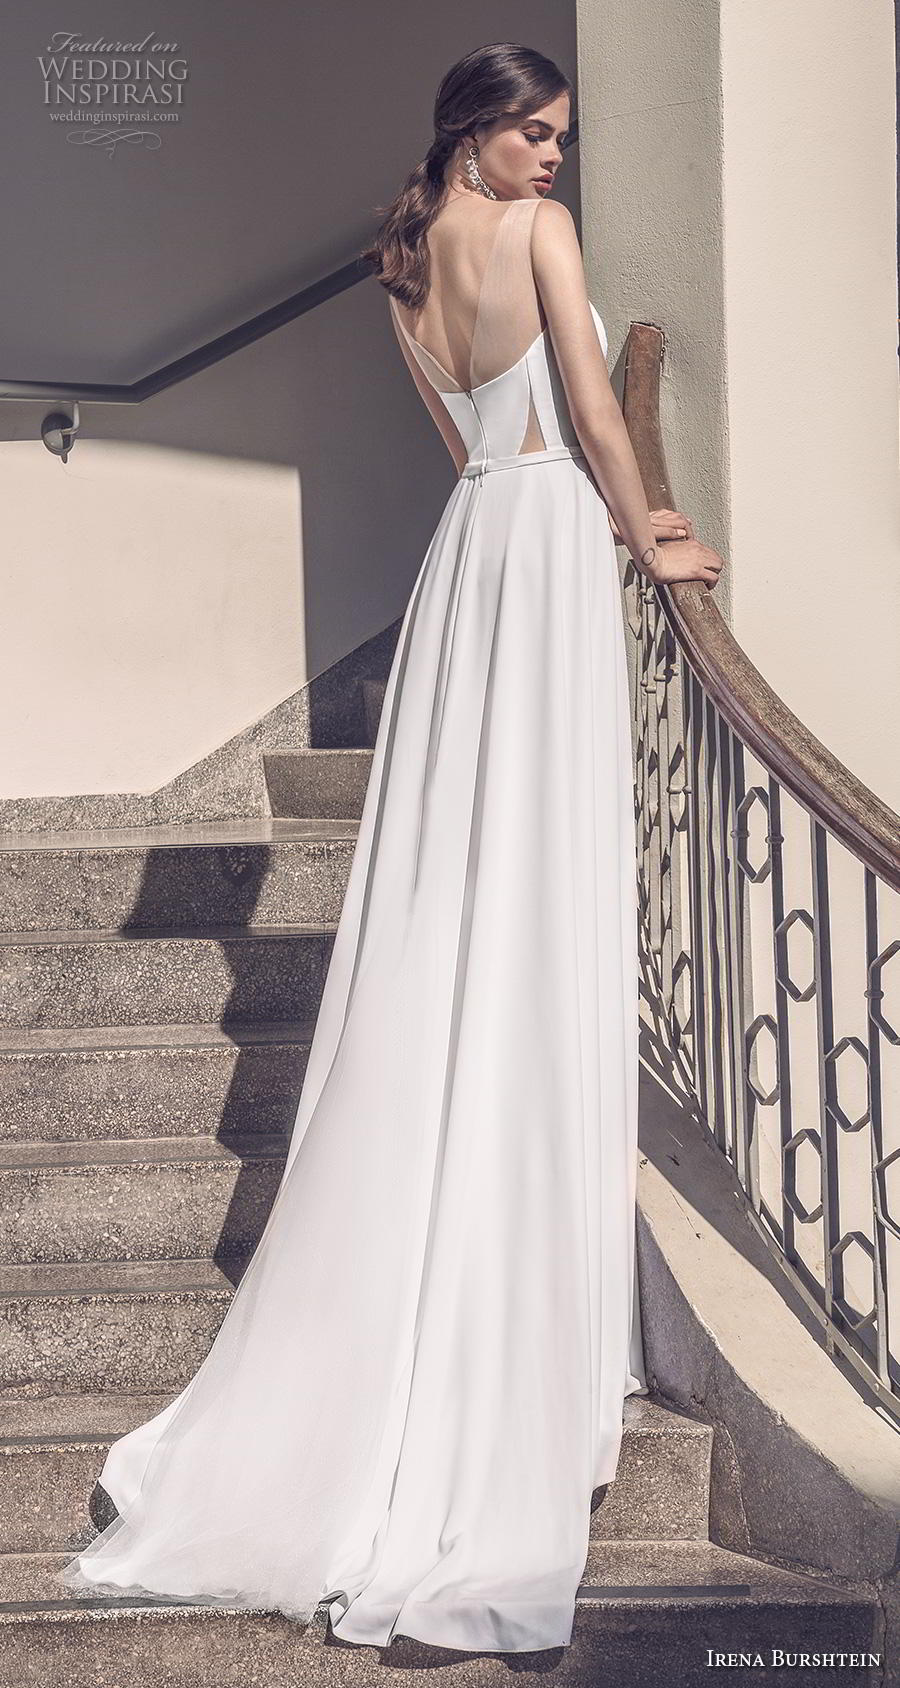 irena burshtein 2020 bridal sleeveless deep sweetheart neckline simple minimalist elegant slit skirt sheath wedding dress backless v back chapel train (7) bv